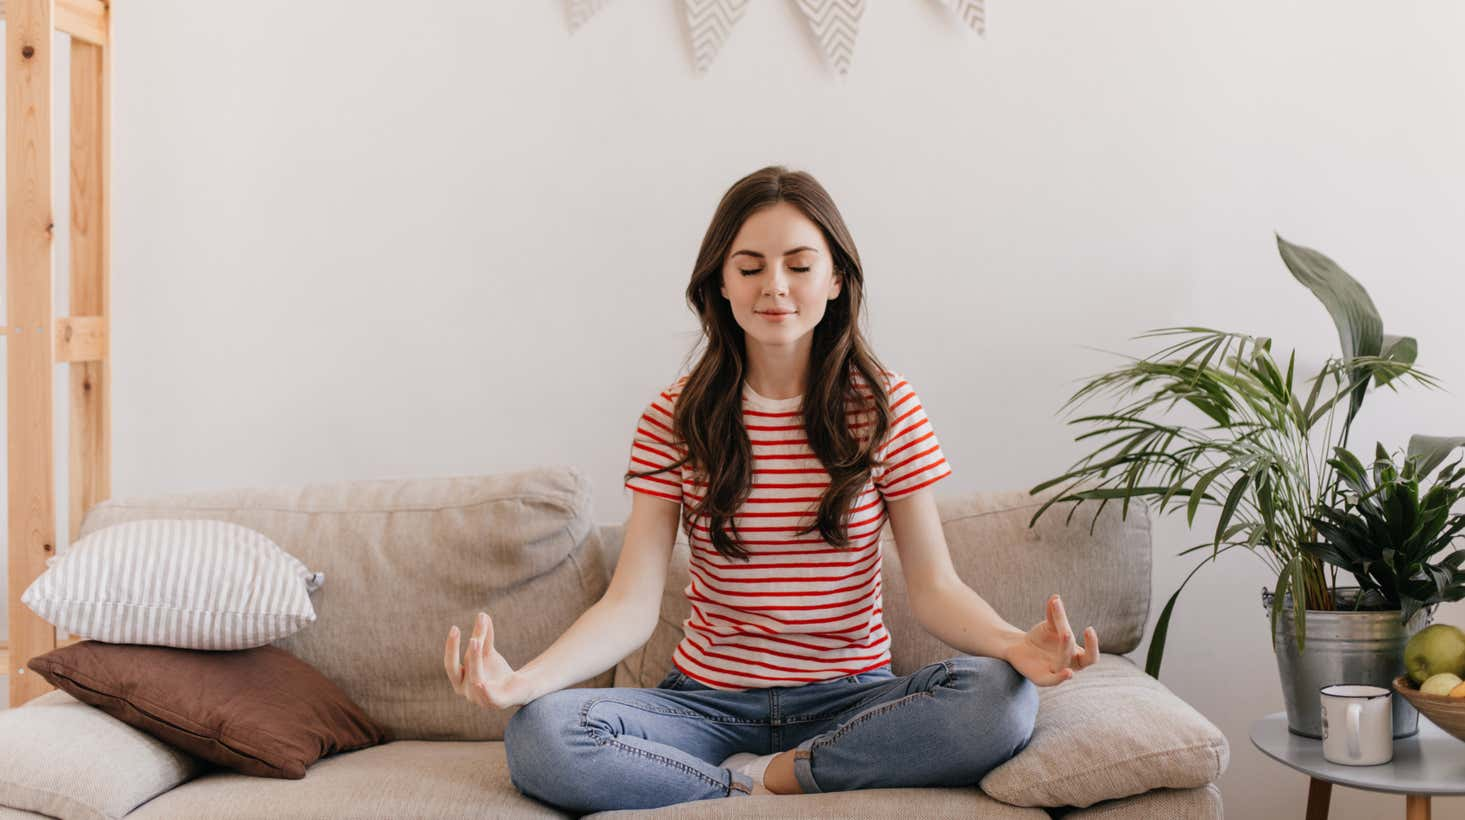 How to Get the Most Out of Meditation